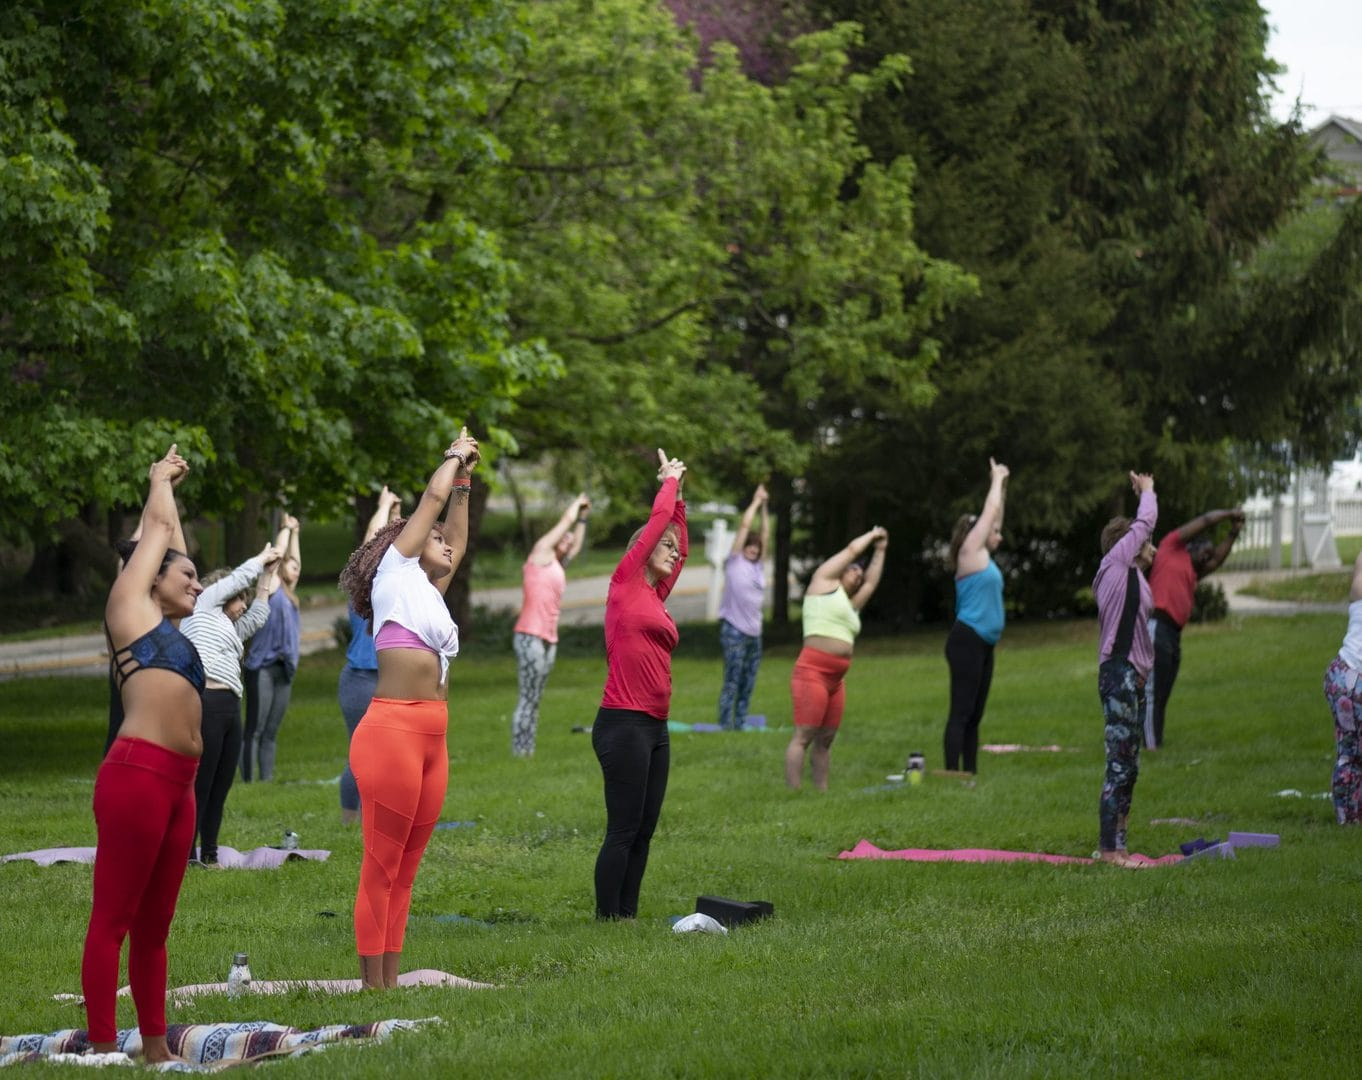 People in multi colored workout clothes doing yoga outside stretching with hands overhead to the right.